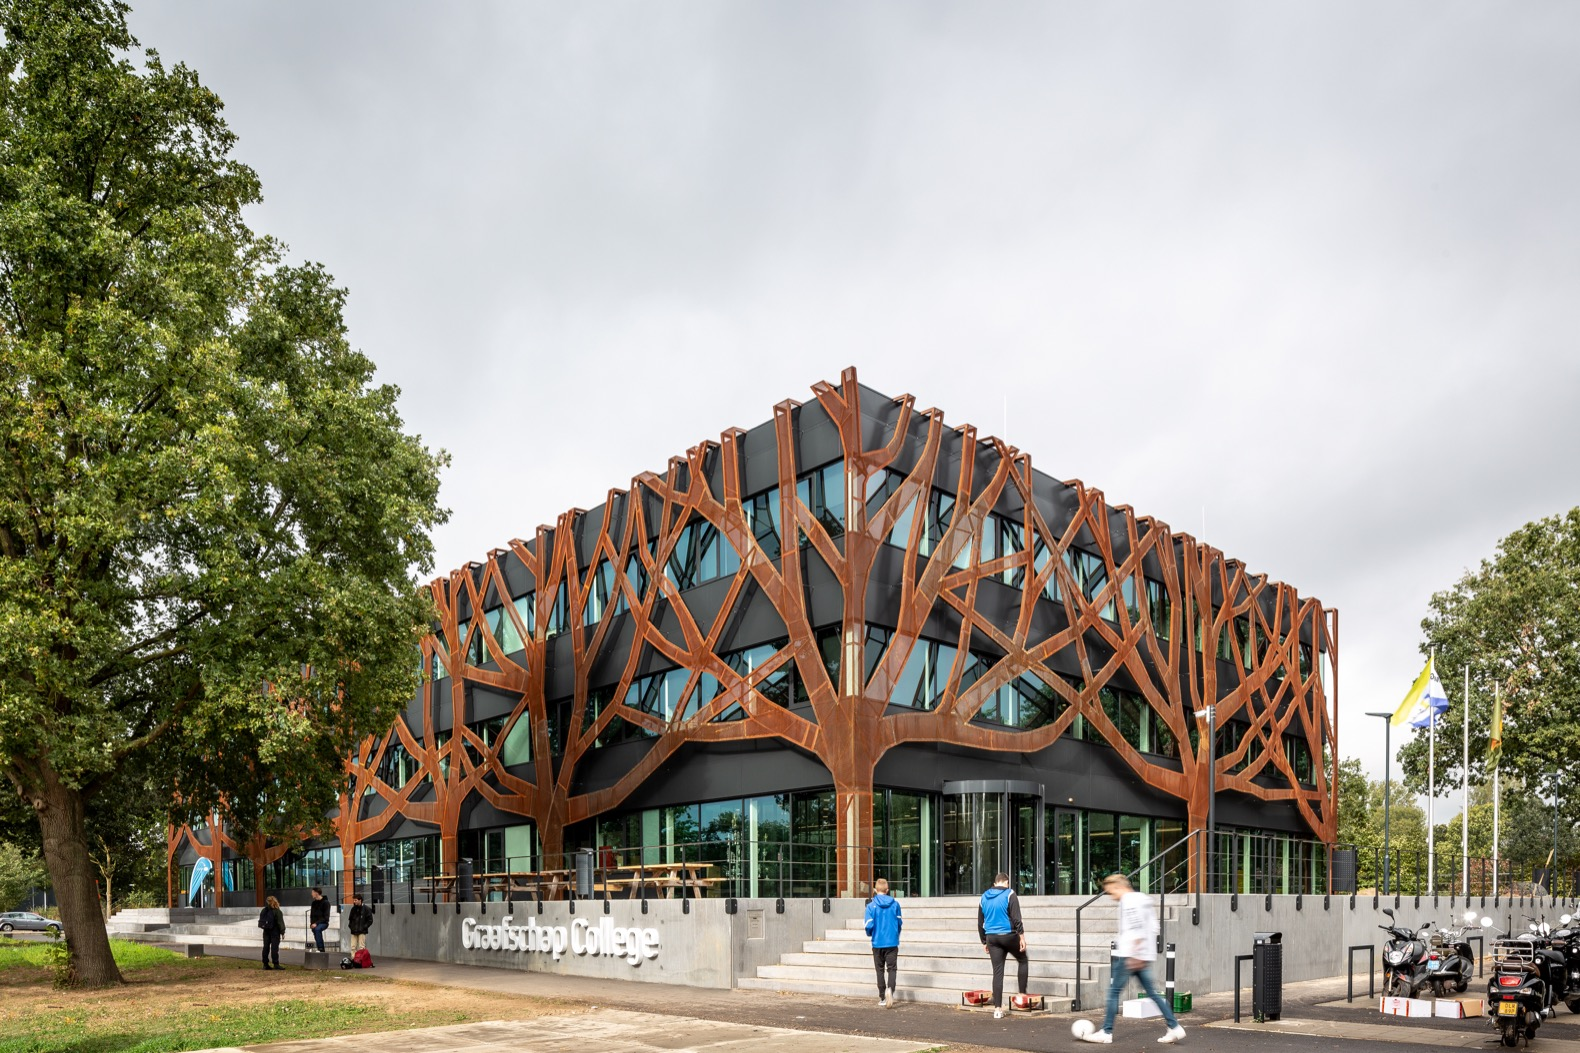 Weathered steel trees wrap around a solar-powered school building